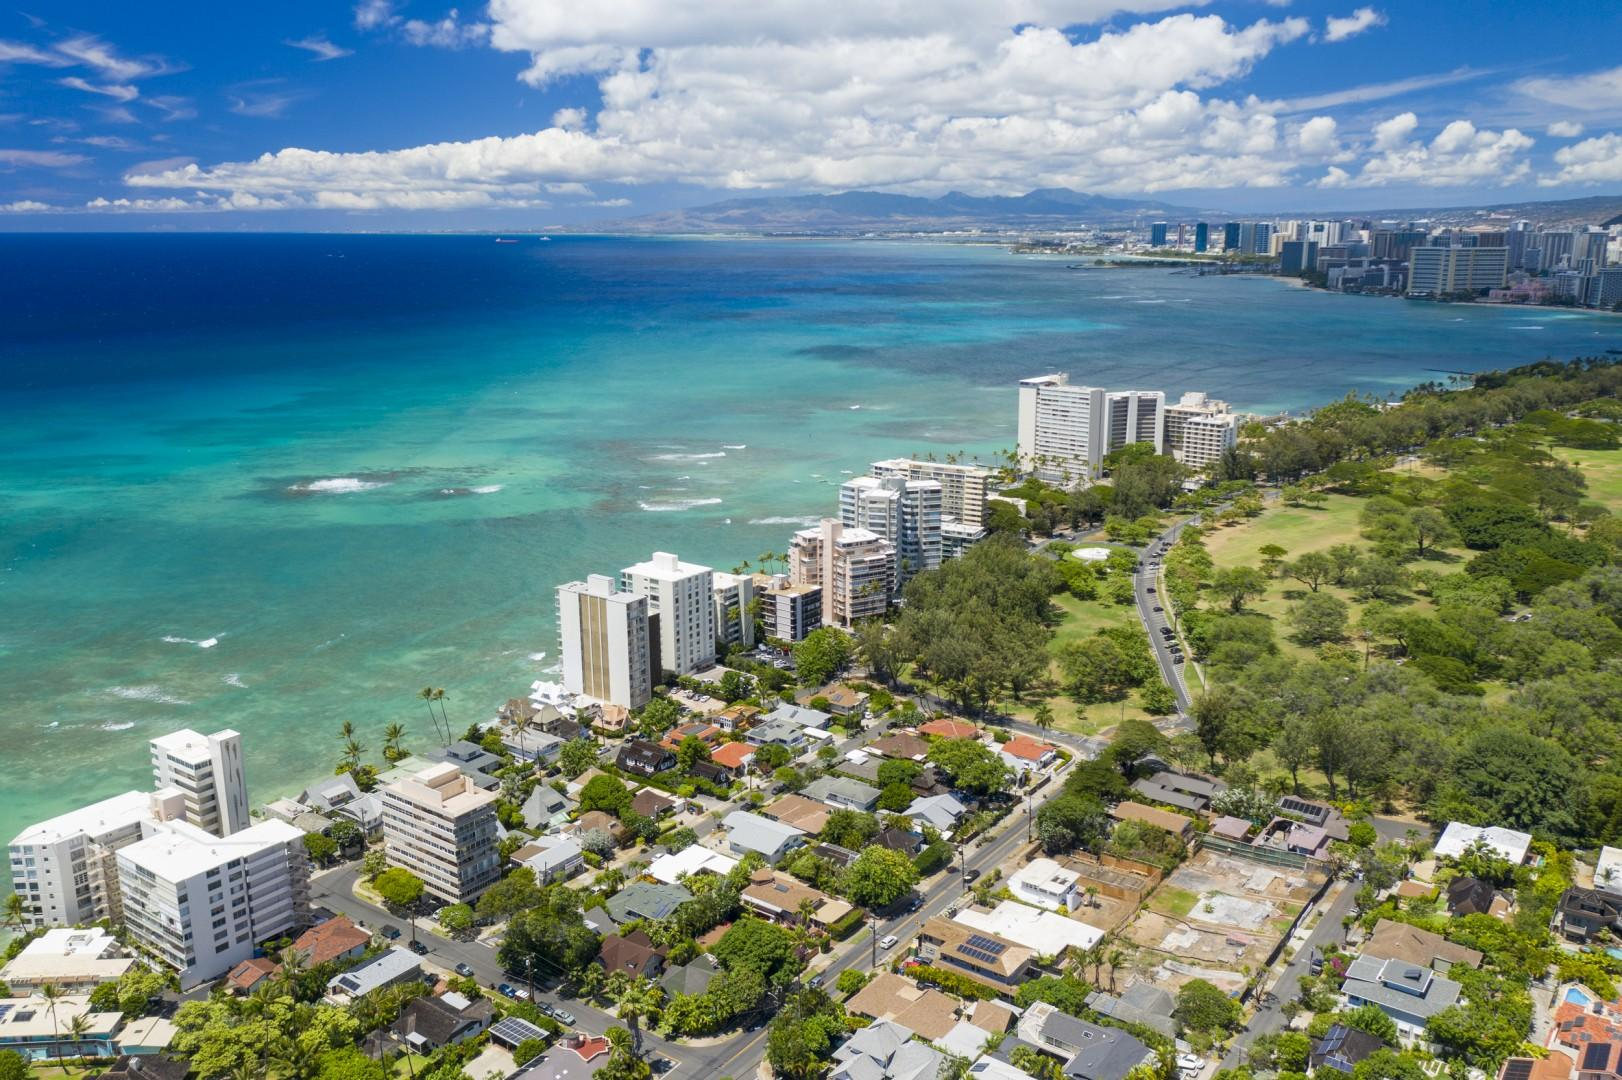 Aerial view of Diamond Head neighborhood looking West.